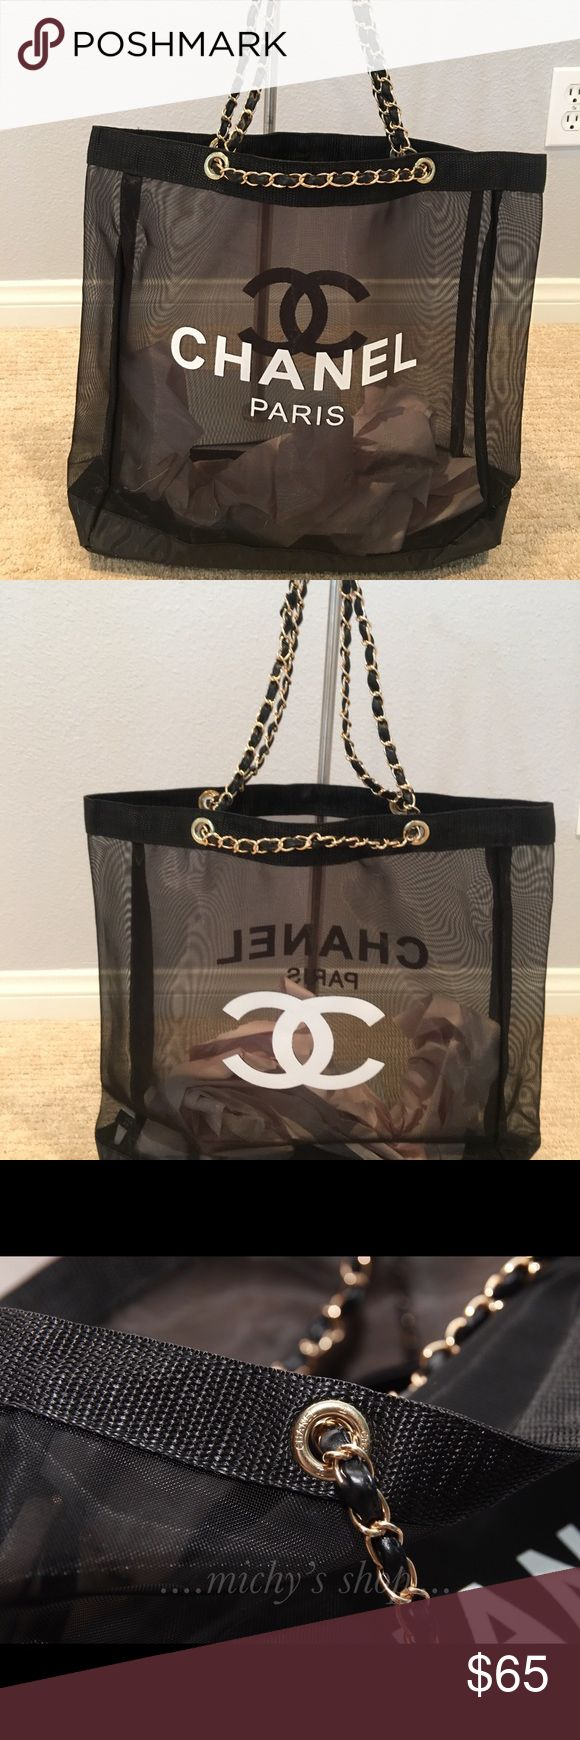 Chanel Mesh Tote Shopping bag VIP gift New Auth Chanel